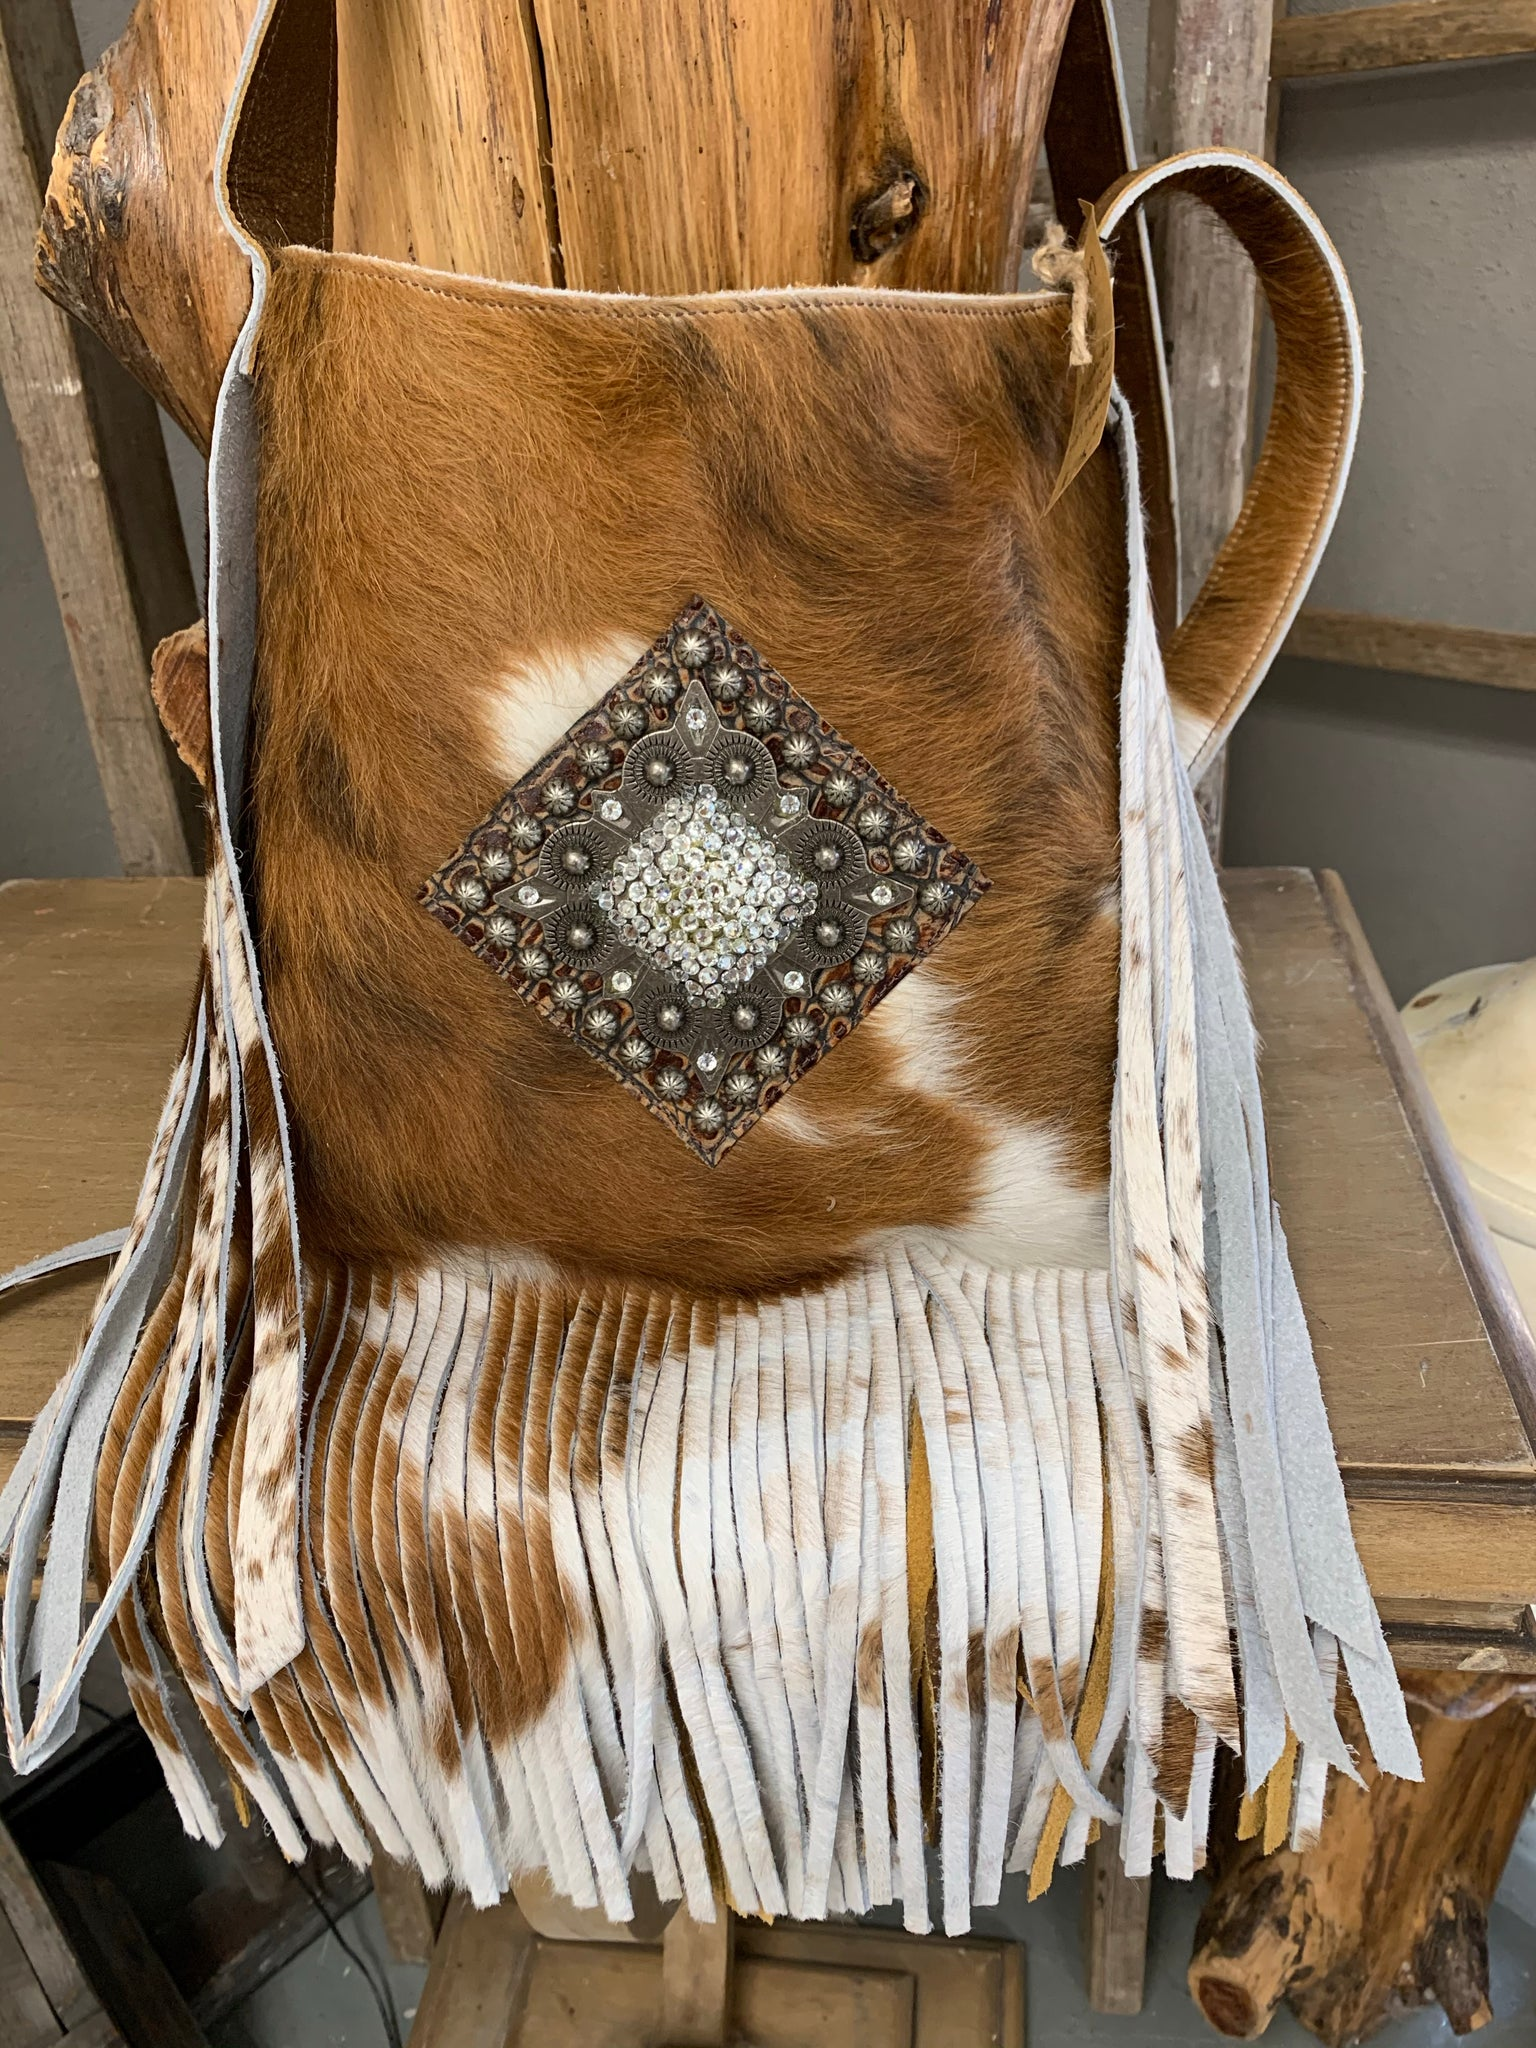 Raviani Fringe GoldenBrown and White Cowhide Shoulder Bag with Diamond Medallion